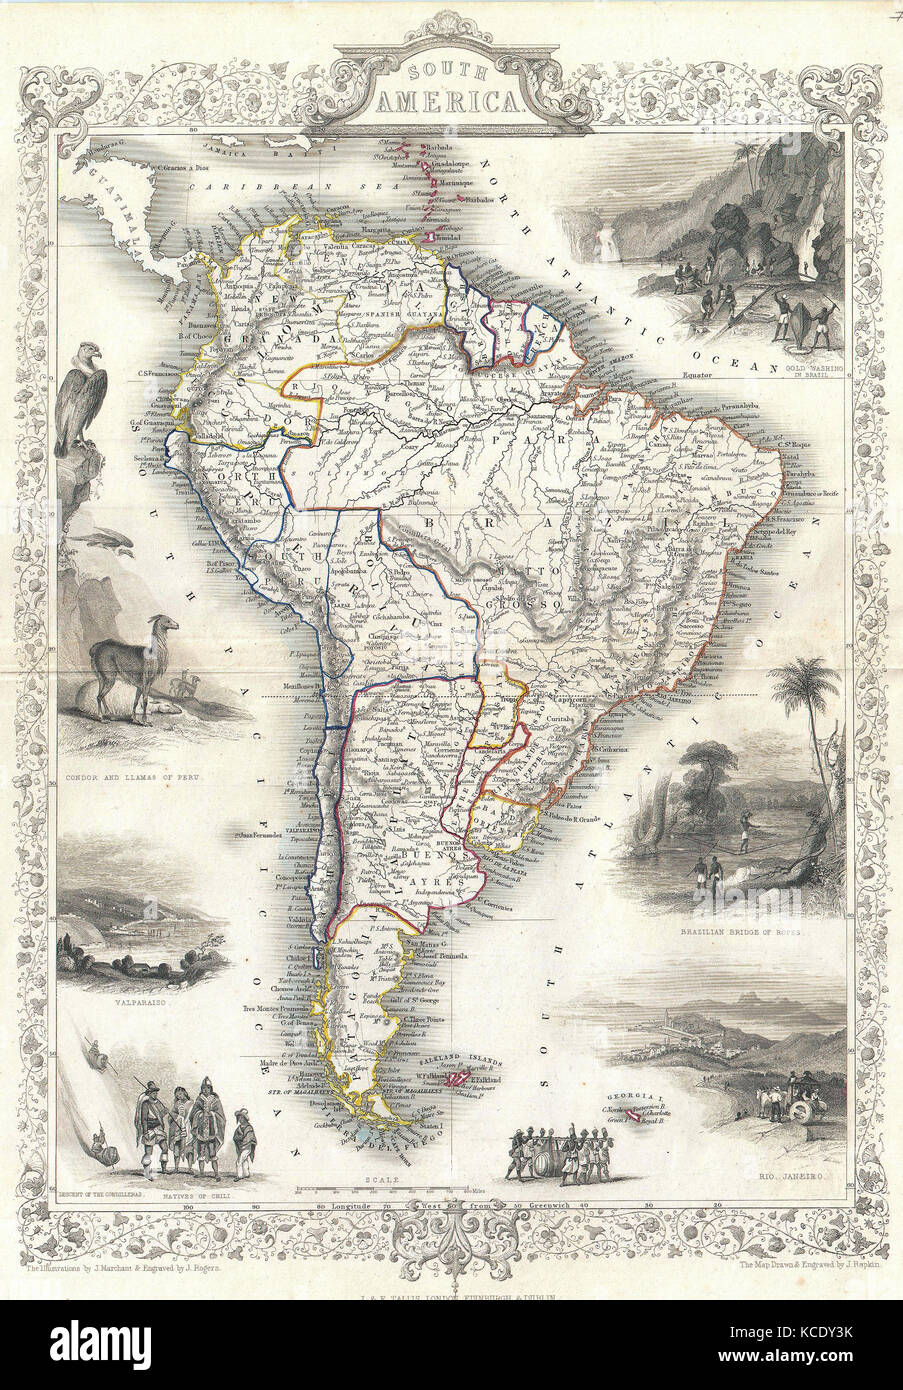 South America Ancient Map Stock Photos South America Ancient Map